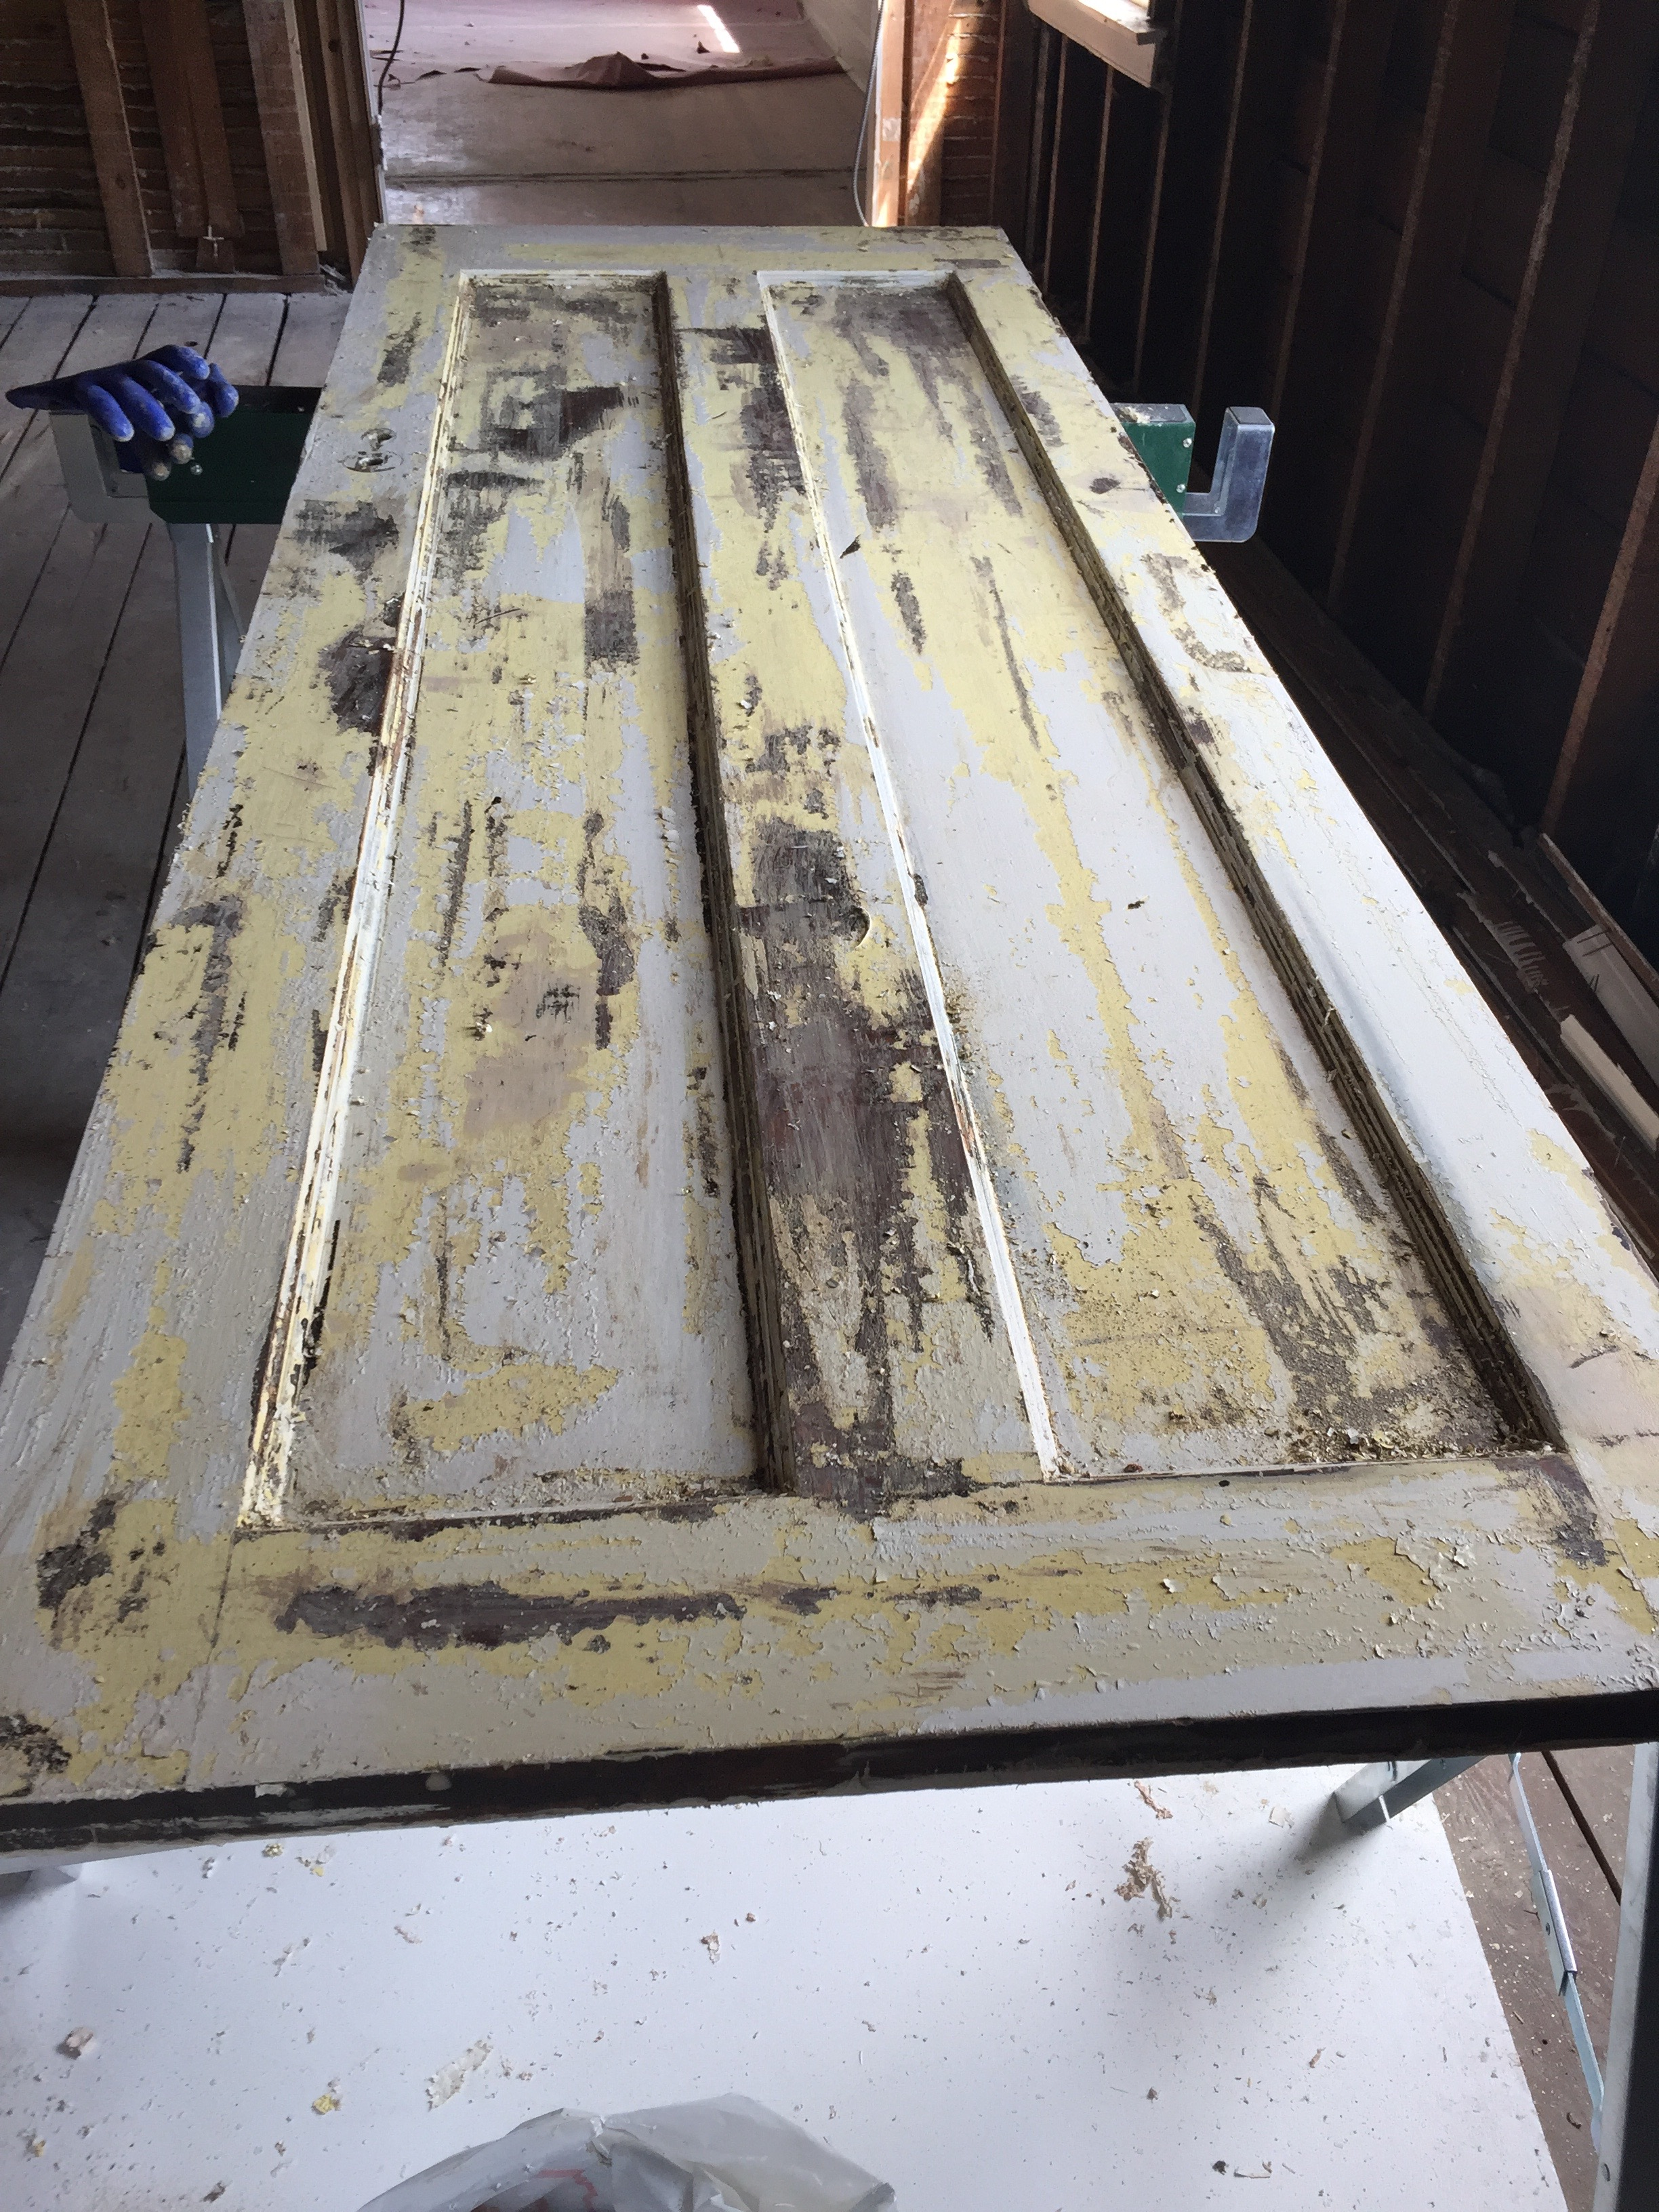 We decided to preserve as many of the original solid wood interior doors as we could. Some were in rough shape, and all of them needed to be stripped, sanded, and repainted.